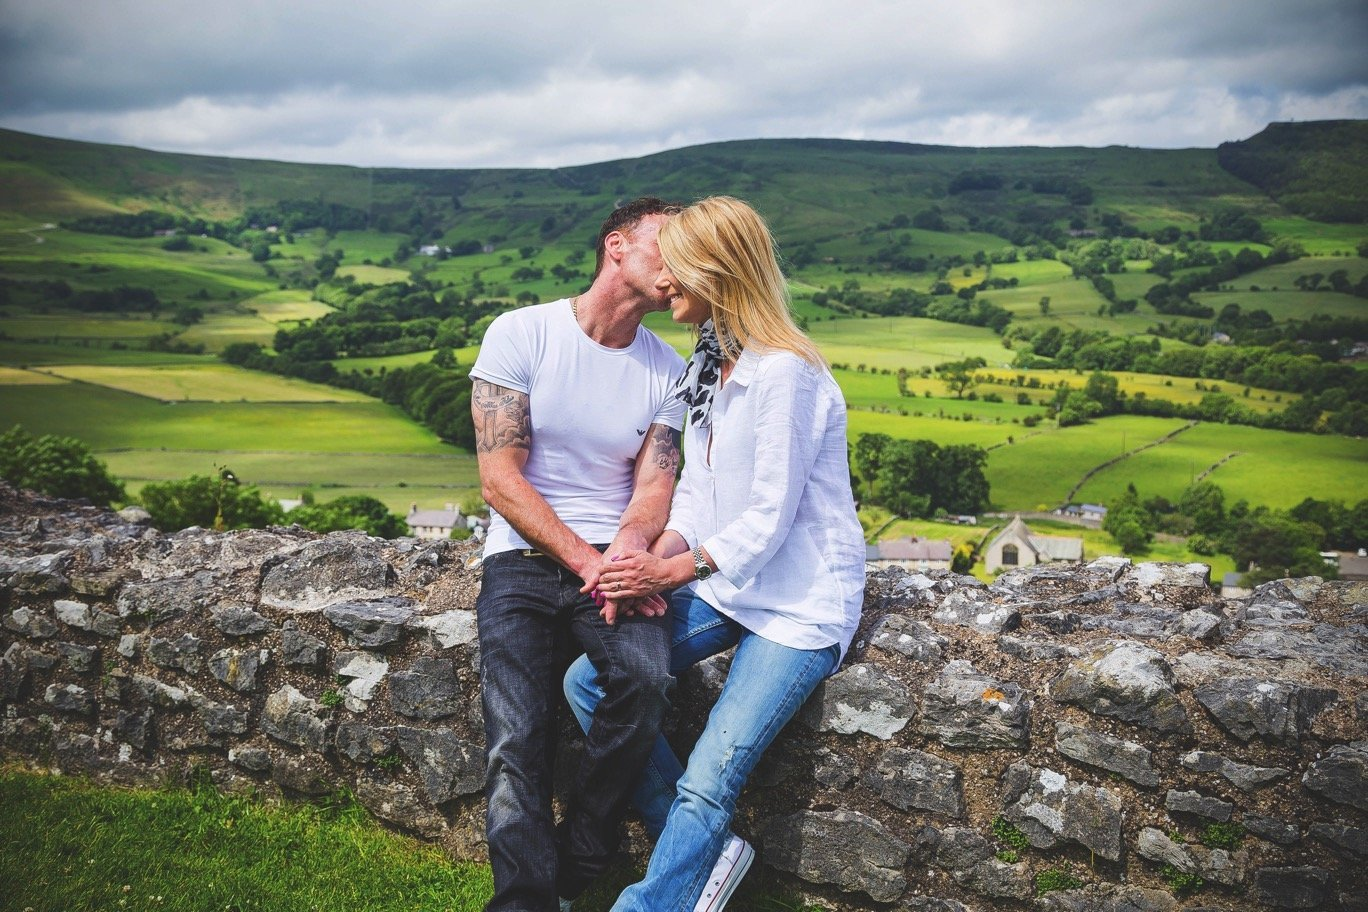 Derbyshire Peak District Engagement Shoot – Calum & Mel